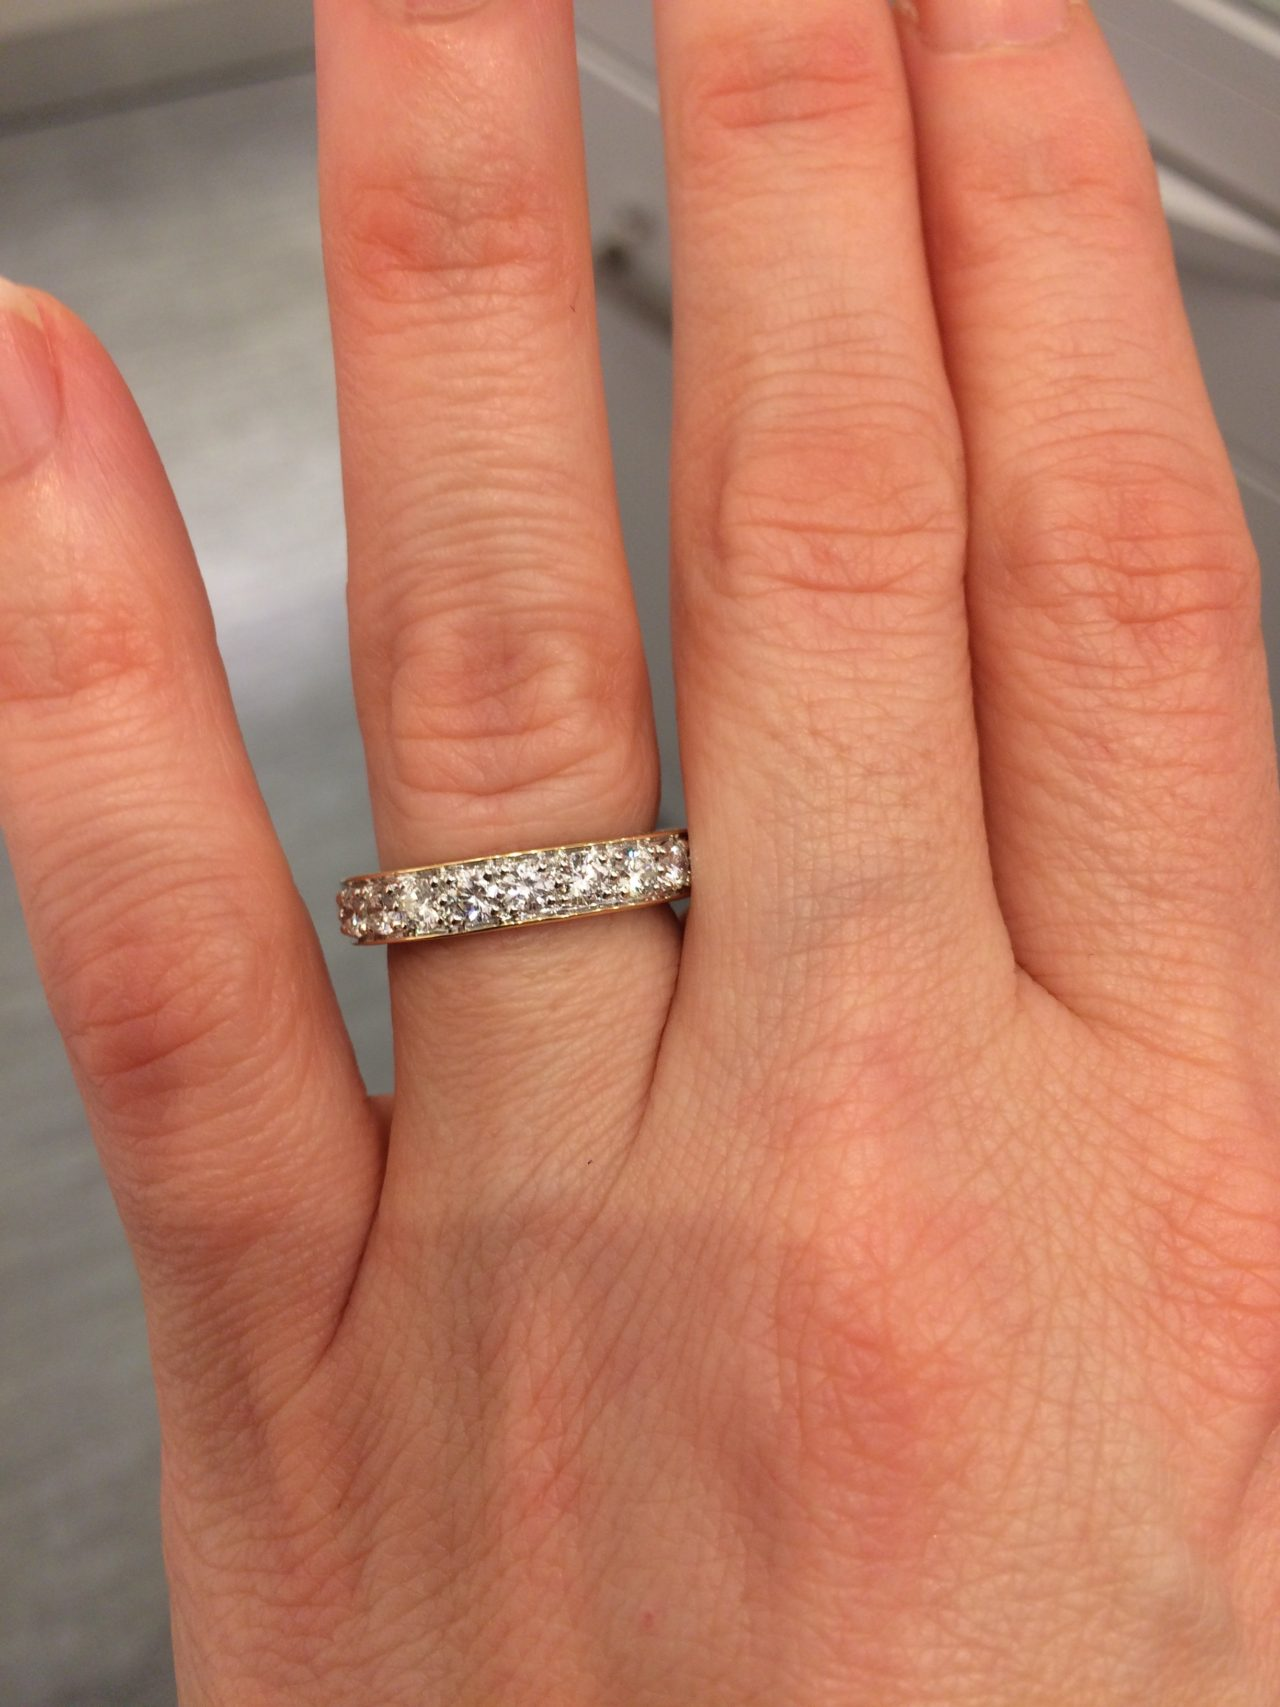 Hand With A Beautiful White Gold Ring With Small Diamonds Against A Light Gray Background